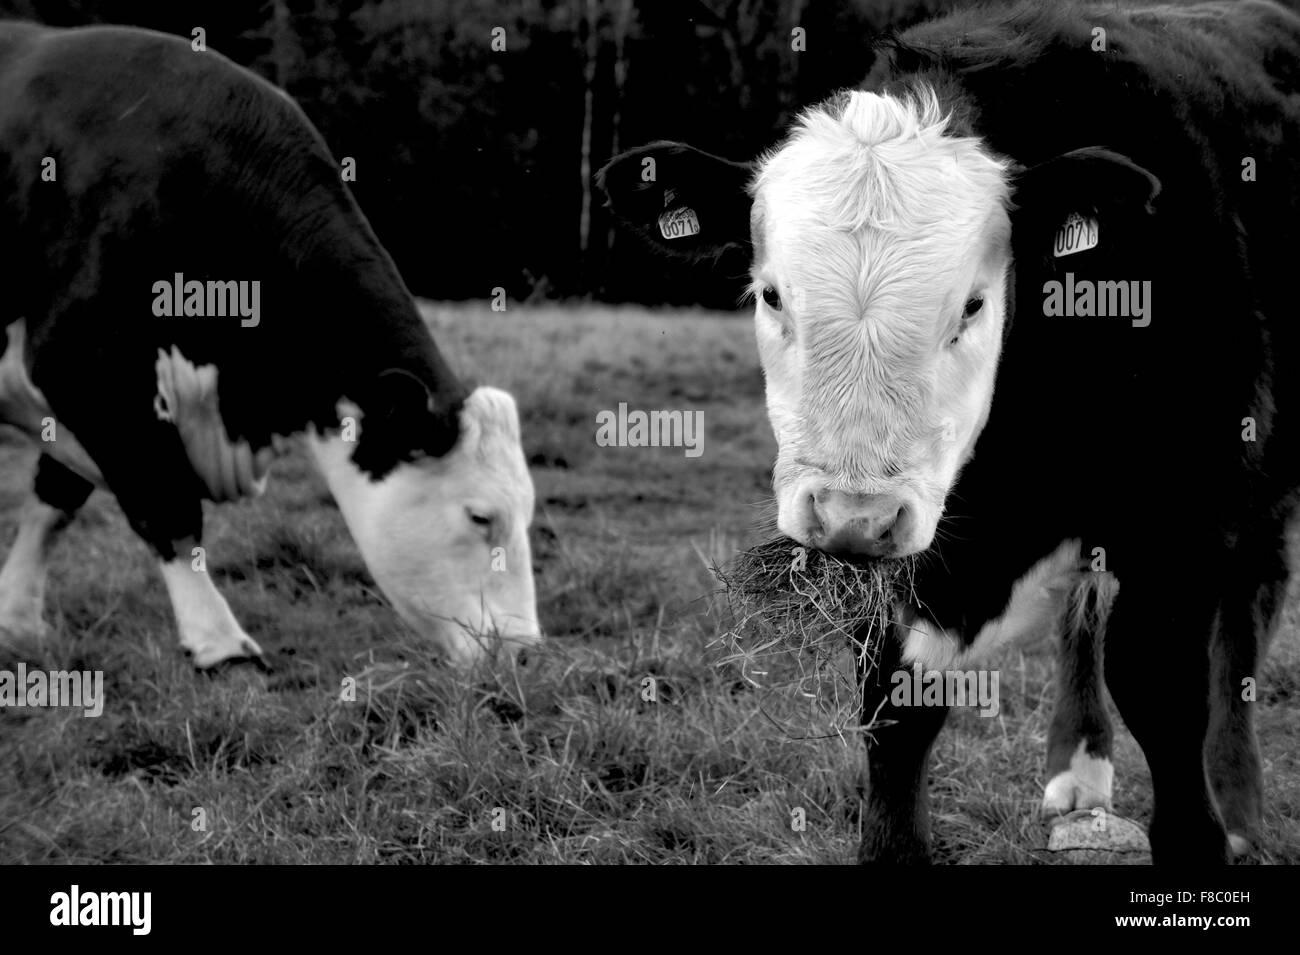 Two black and white cows in a field in black and white Stock Photo